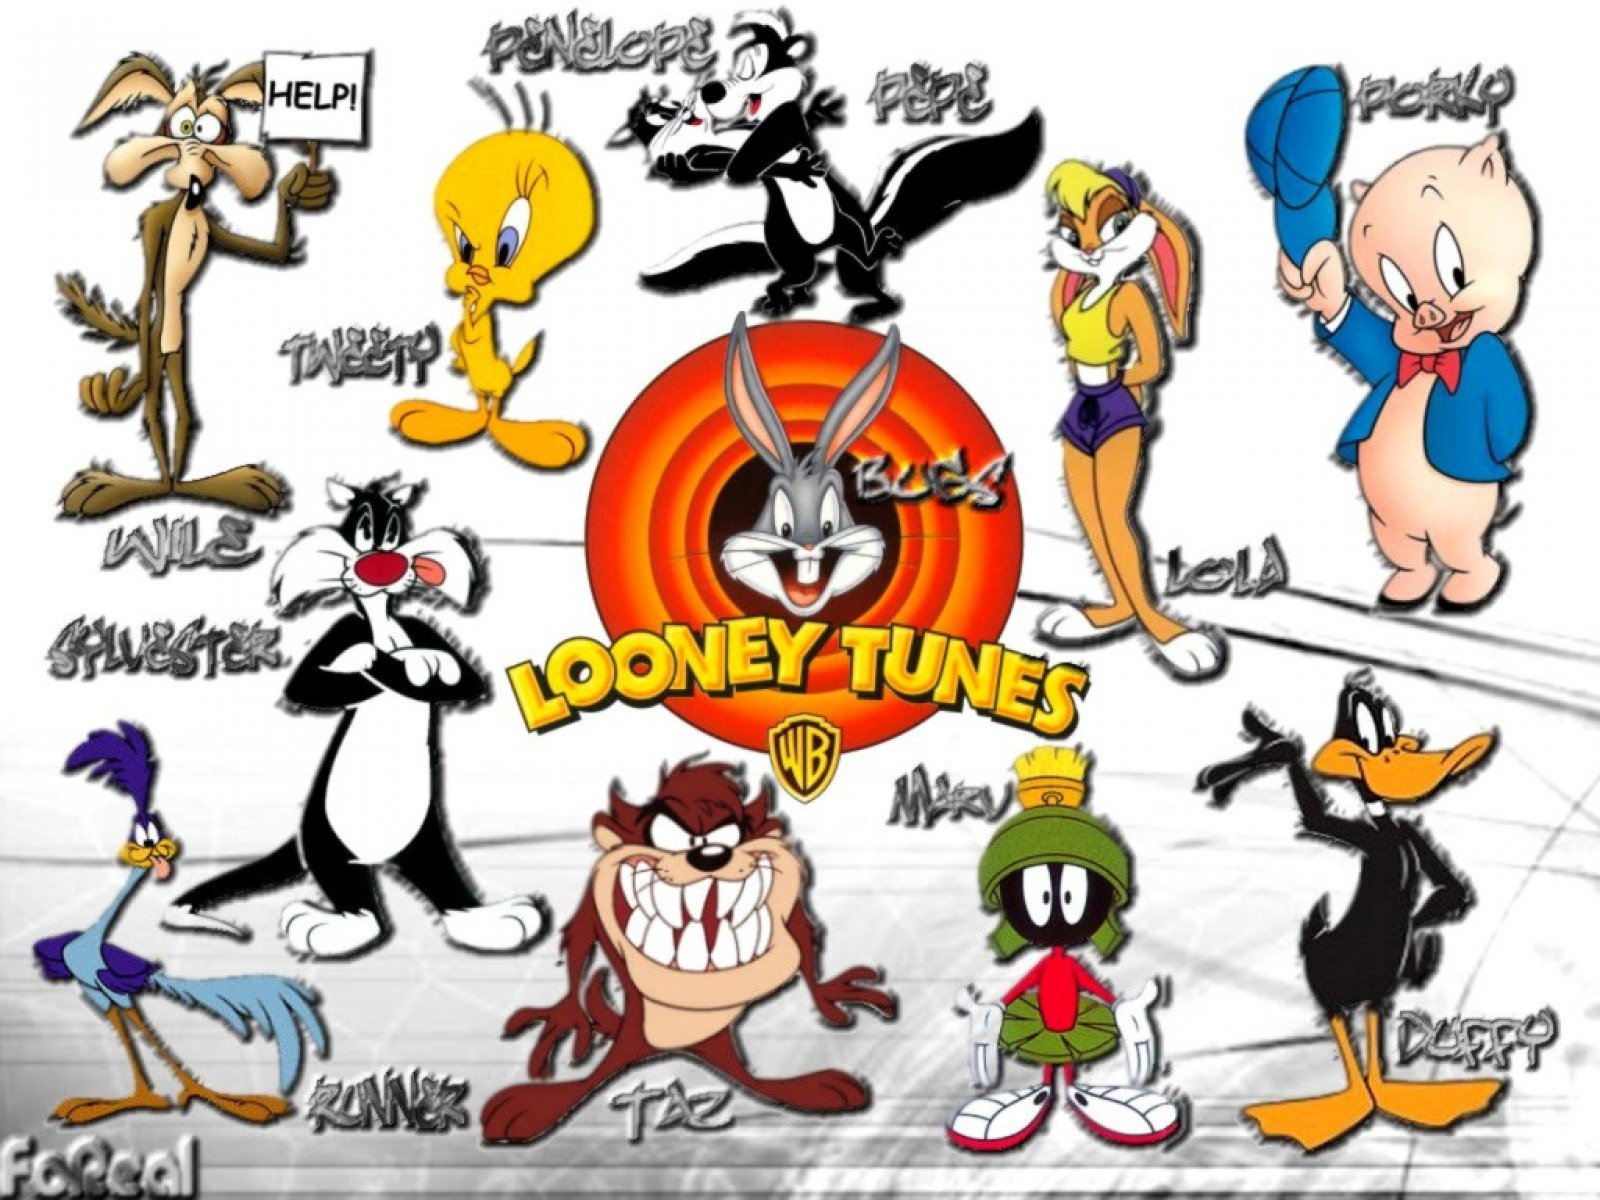 Looney tune characters pictures and names